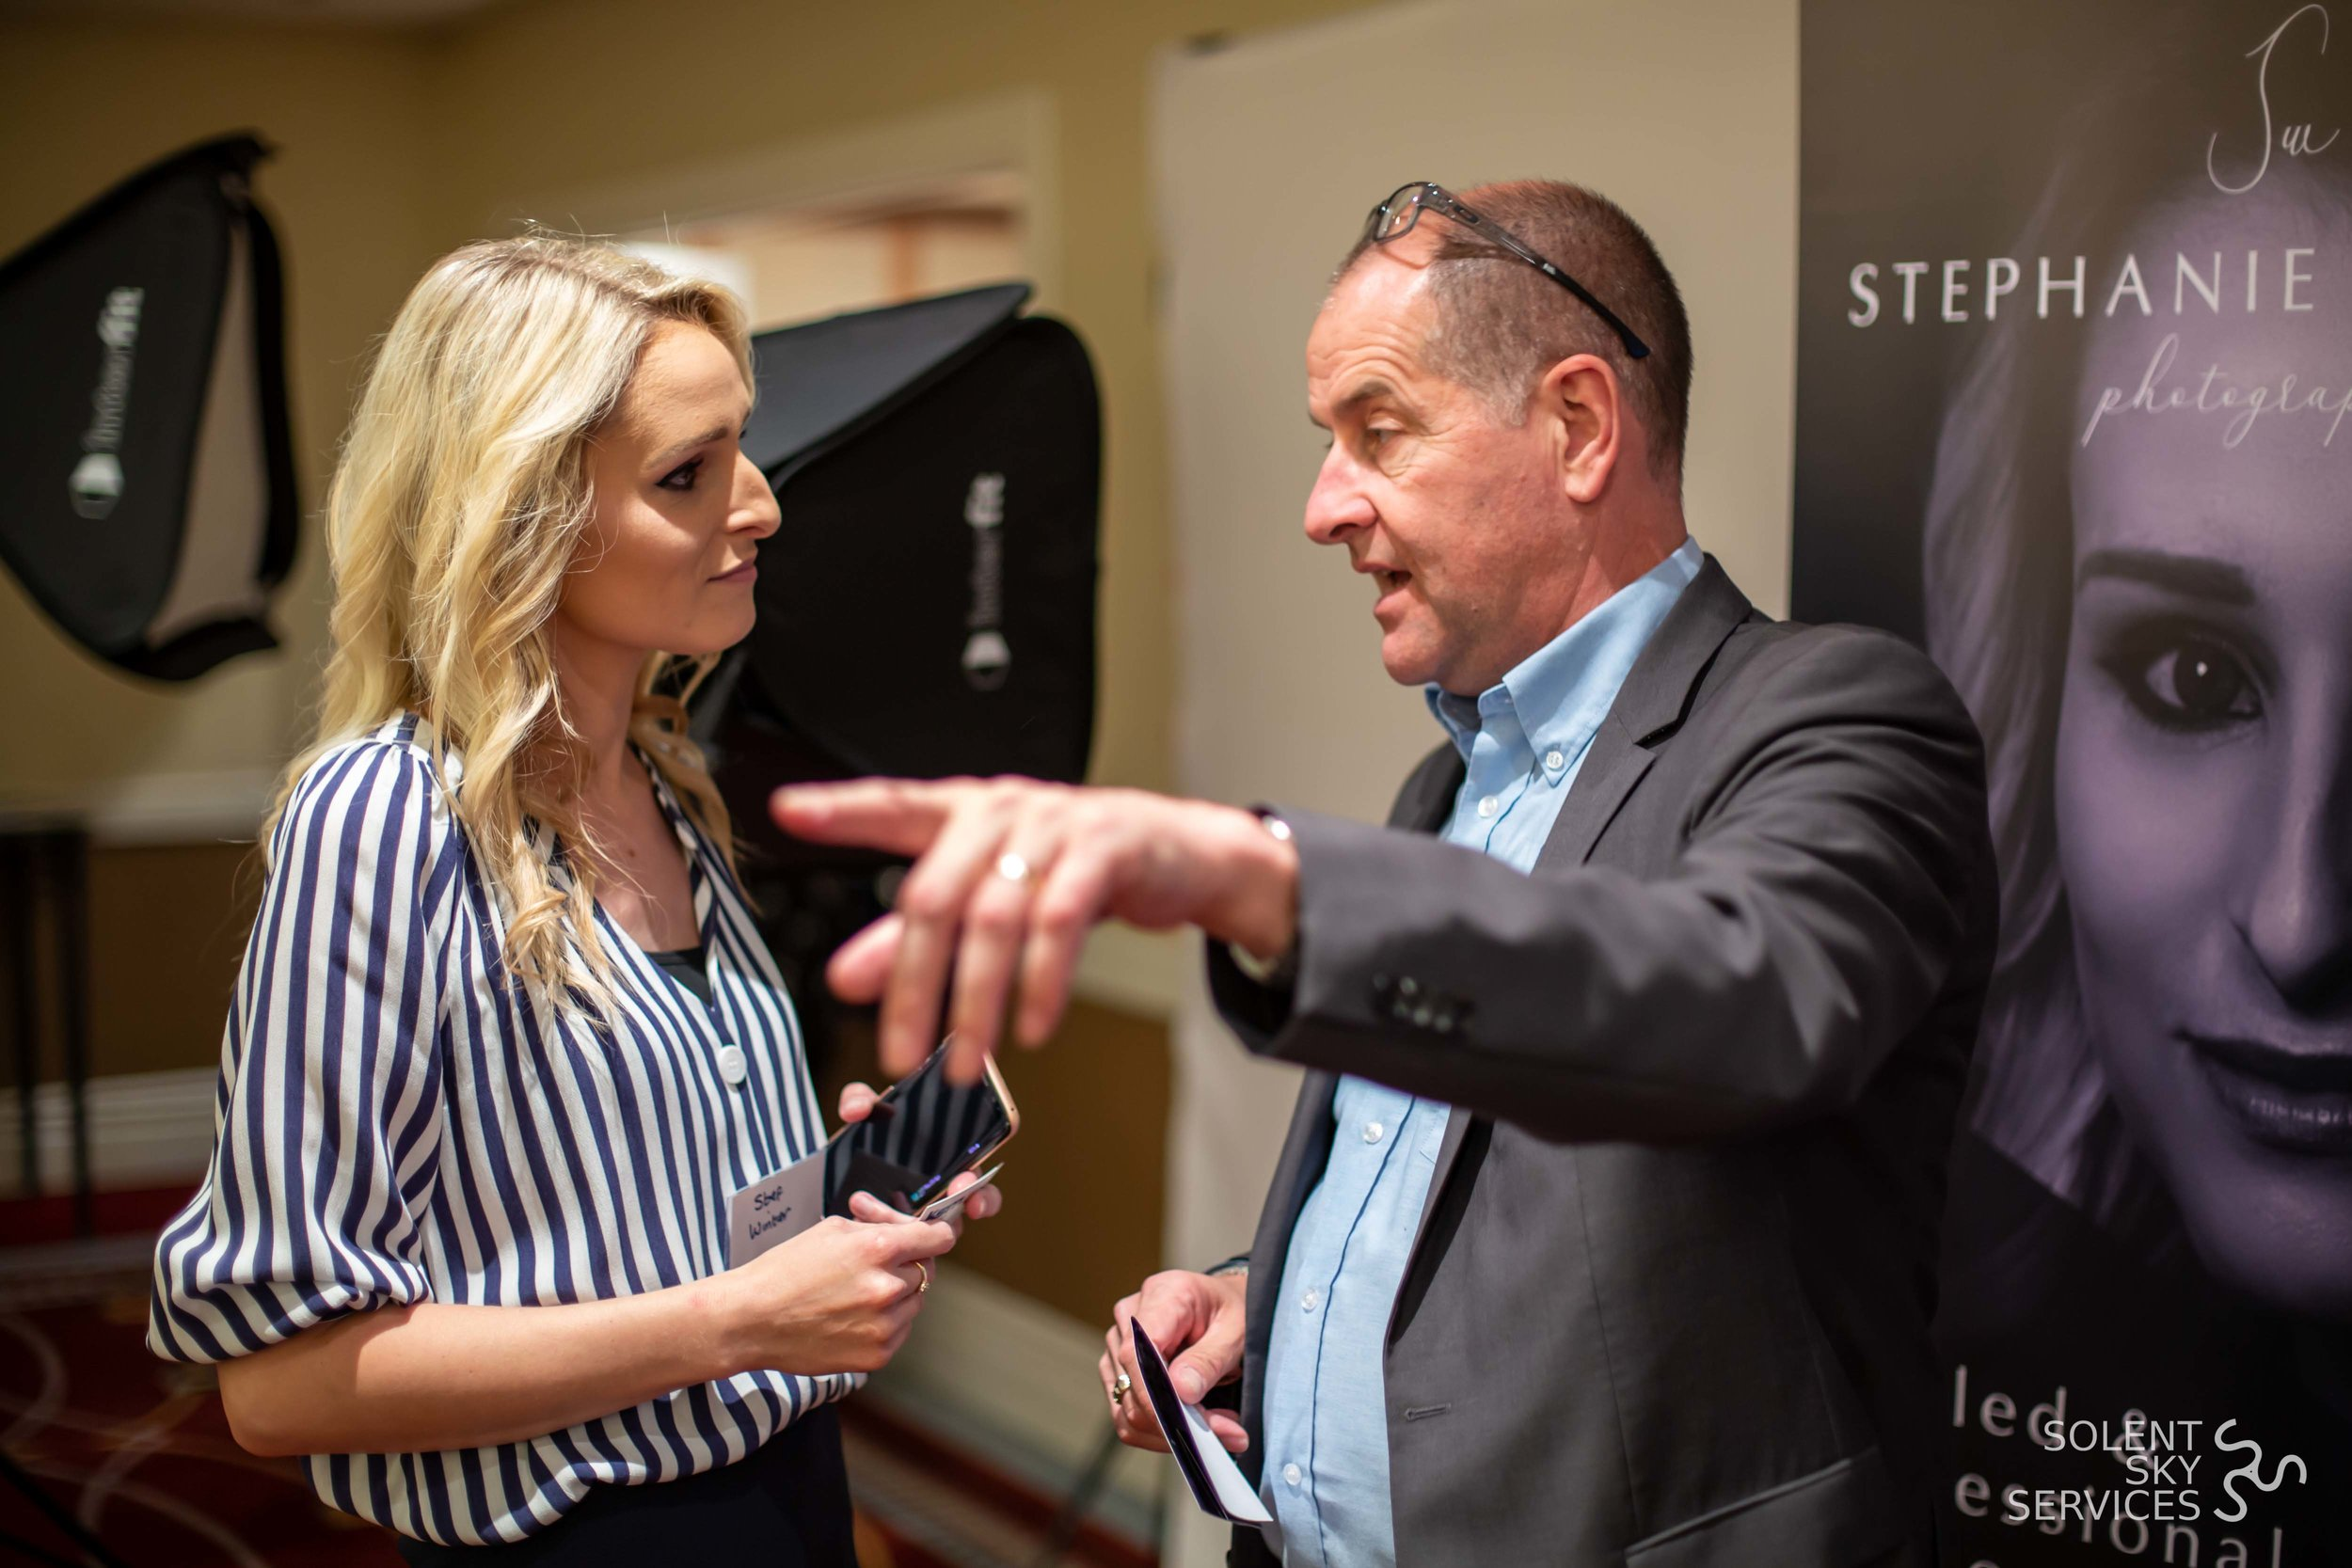 Synergy Success Networking Event #2 - Solent Sky Services-11.JPG